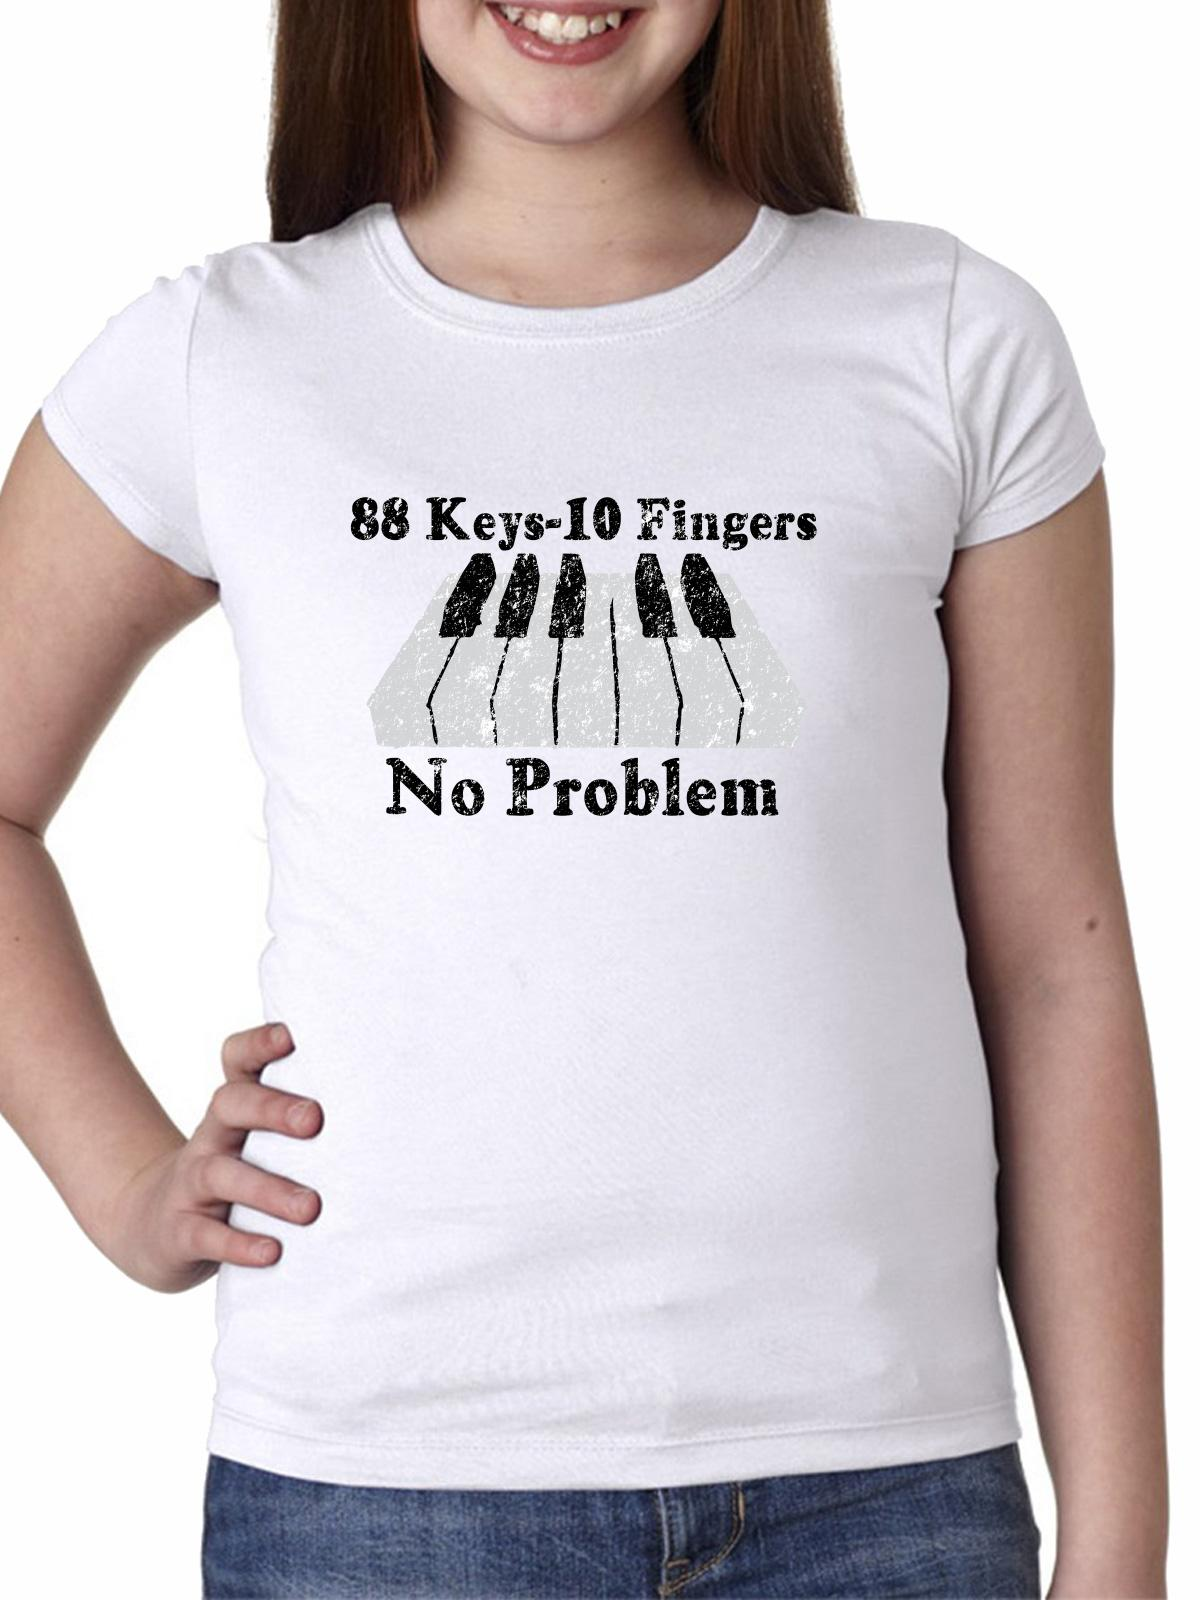 88 Keys-10 Fingers No Problem - Keyboard Piano Girl's Cotton Youth T-Shirt